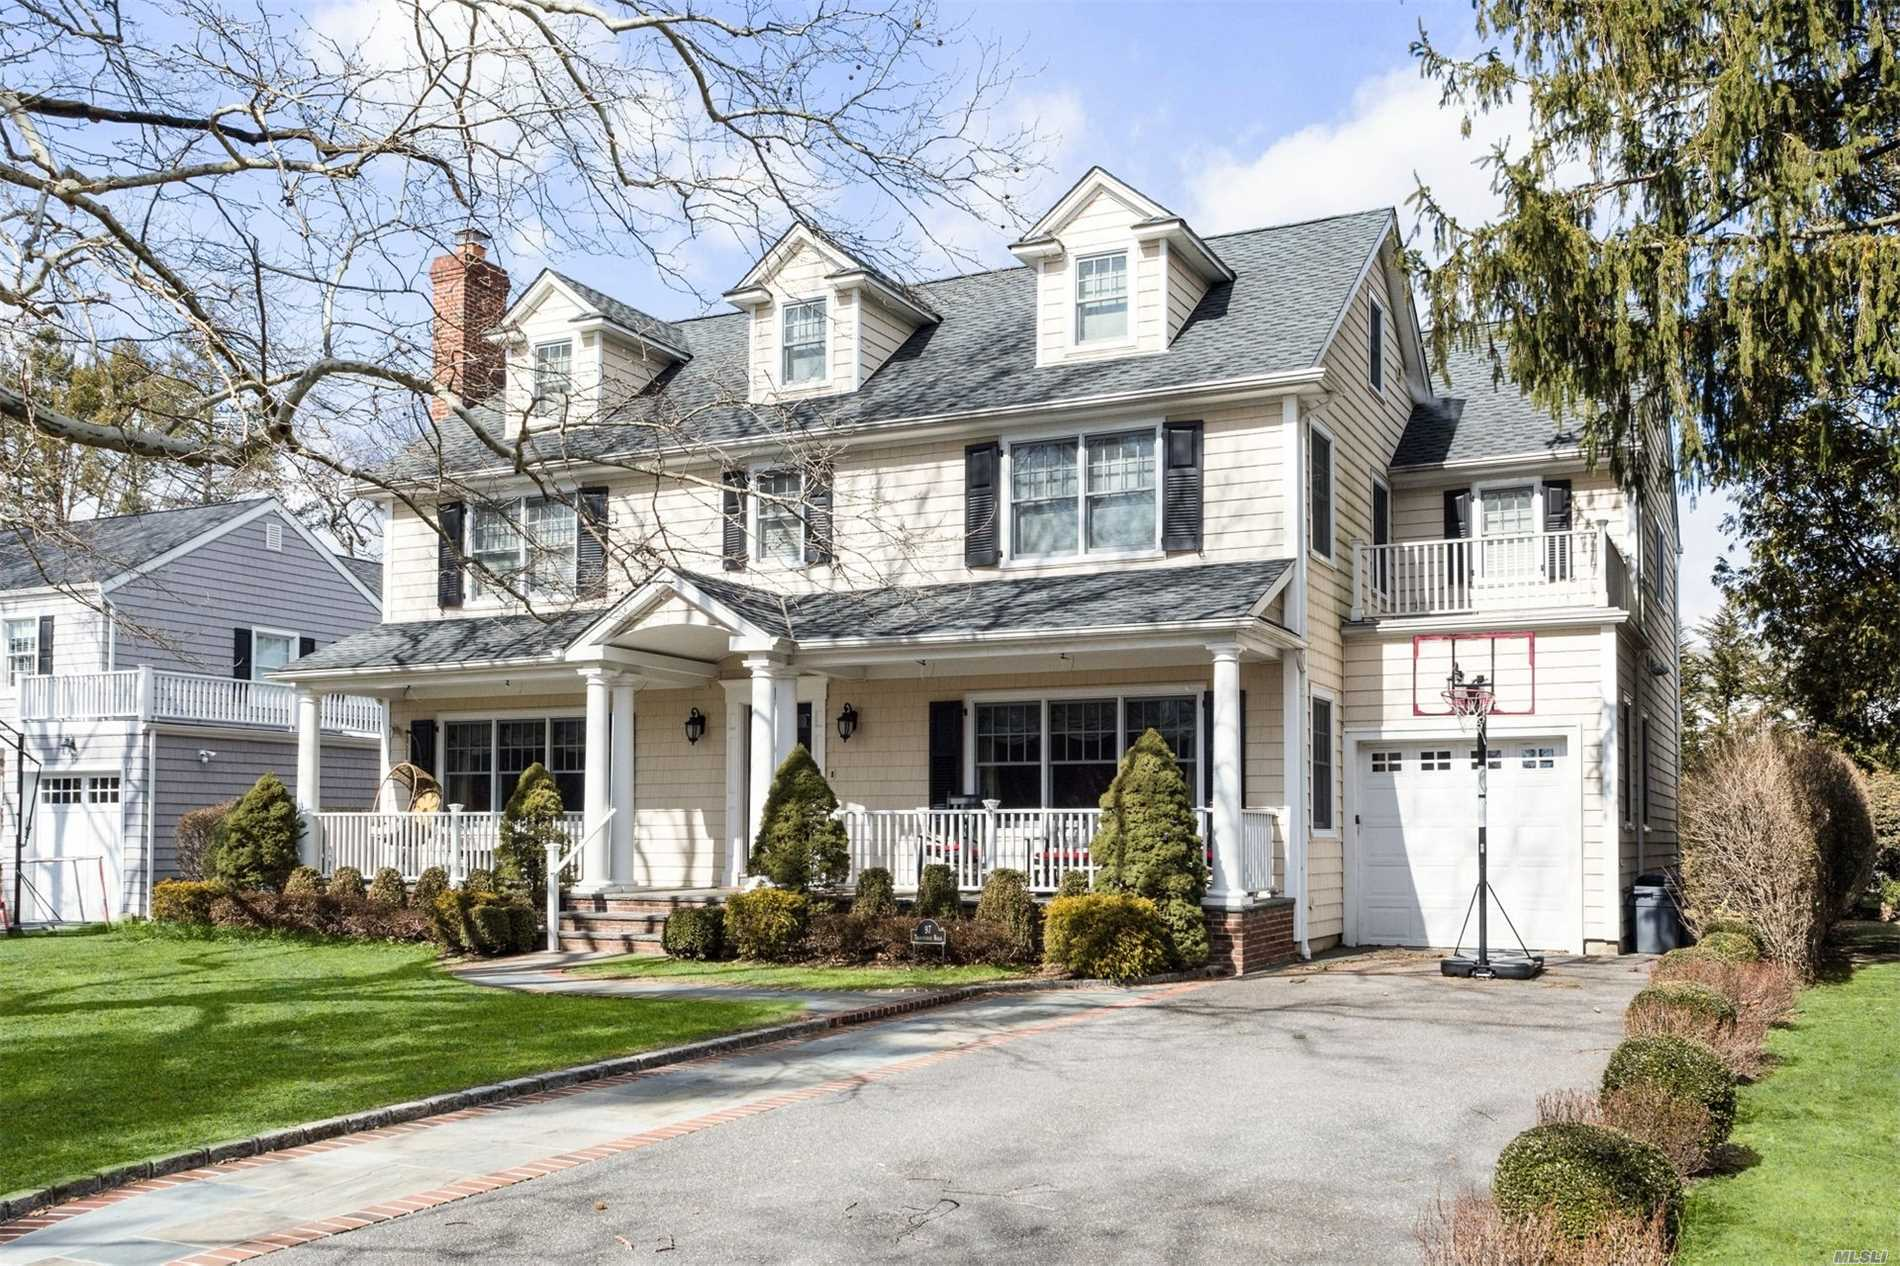 Built Brand New In 2008 By Old World Corp On Deep Lot In Mott Section. Timeless Appeal Of C/H Colonial W/Perfect Layout Features Lr W/Gas Fp, Fdr, Mud & Gourmet Kit W/Impressive Island Completely Open To Dining Area & Fam Rm. Second Flr Boasts Mbr W/Wic & Marble Bath, 3 Large Brs Serviced By 2 Full Baths & Laundry. Spacious Walk Up Attic, Bsmt Game Rm, Rec Rm, Gym, Office & Bath. 4 Zone Geothermal Heat & Cac. The Location, Design & Superior Craftsmanship Make This The Perfect Place To Call Home!